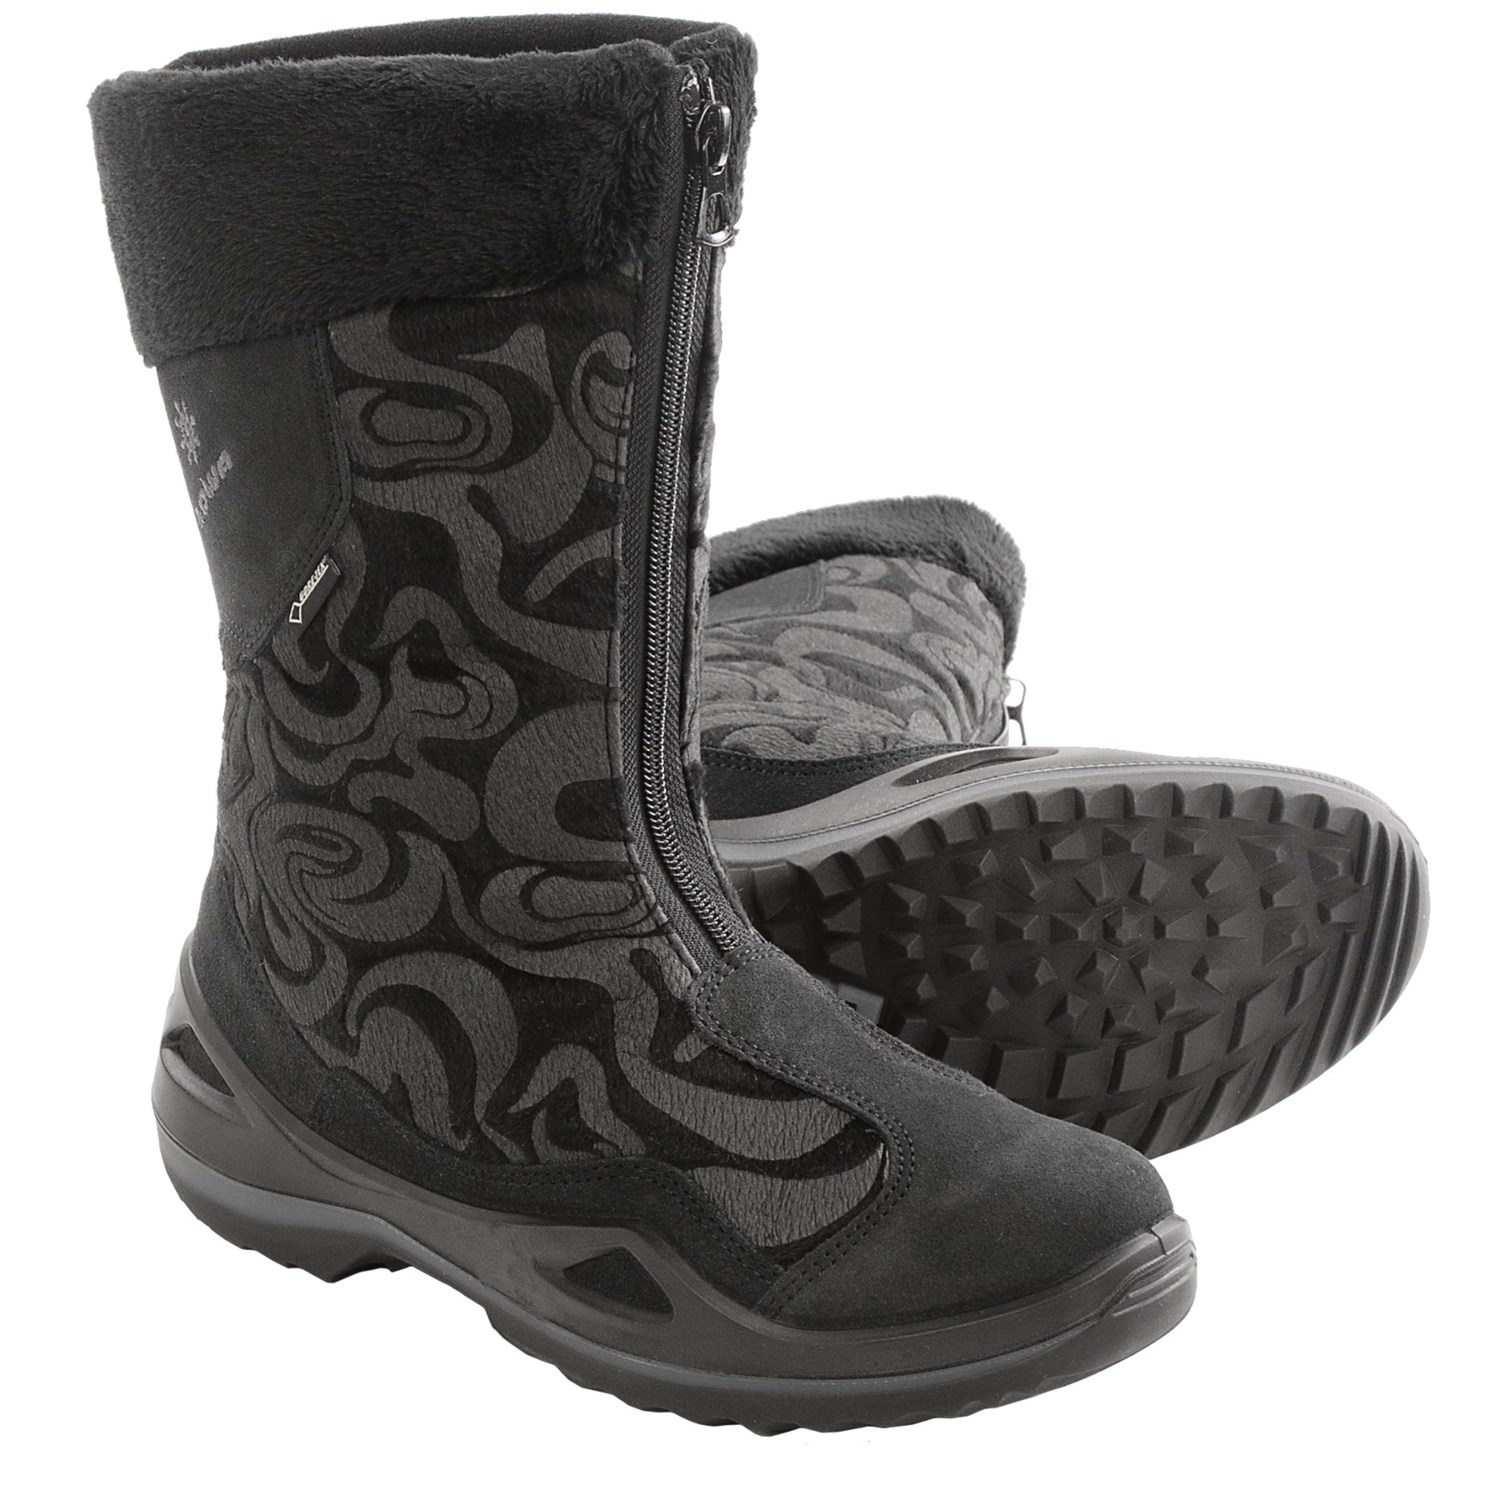 Lowa Solden Gore-Tex® Winter Boots - Waterproof, Insulated